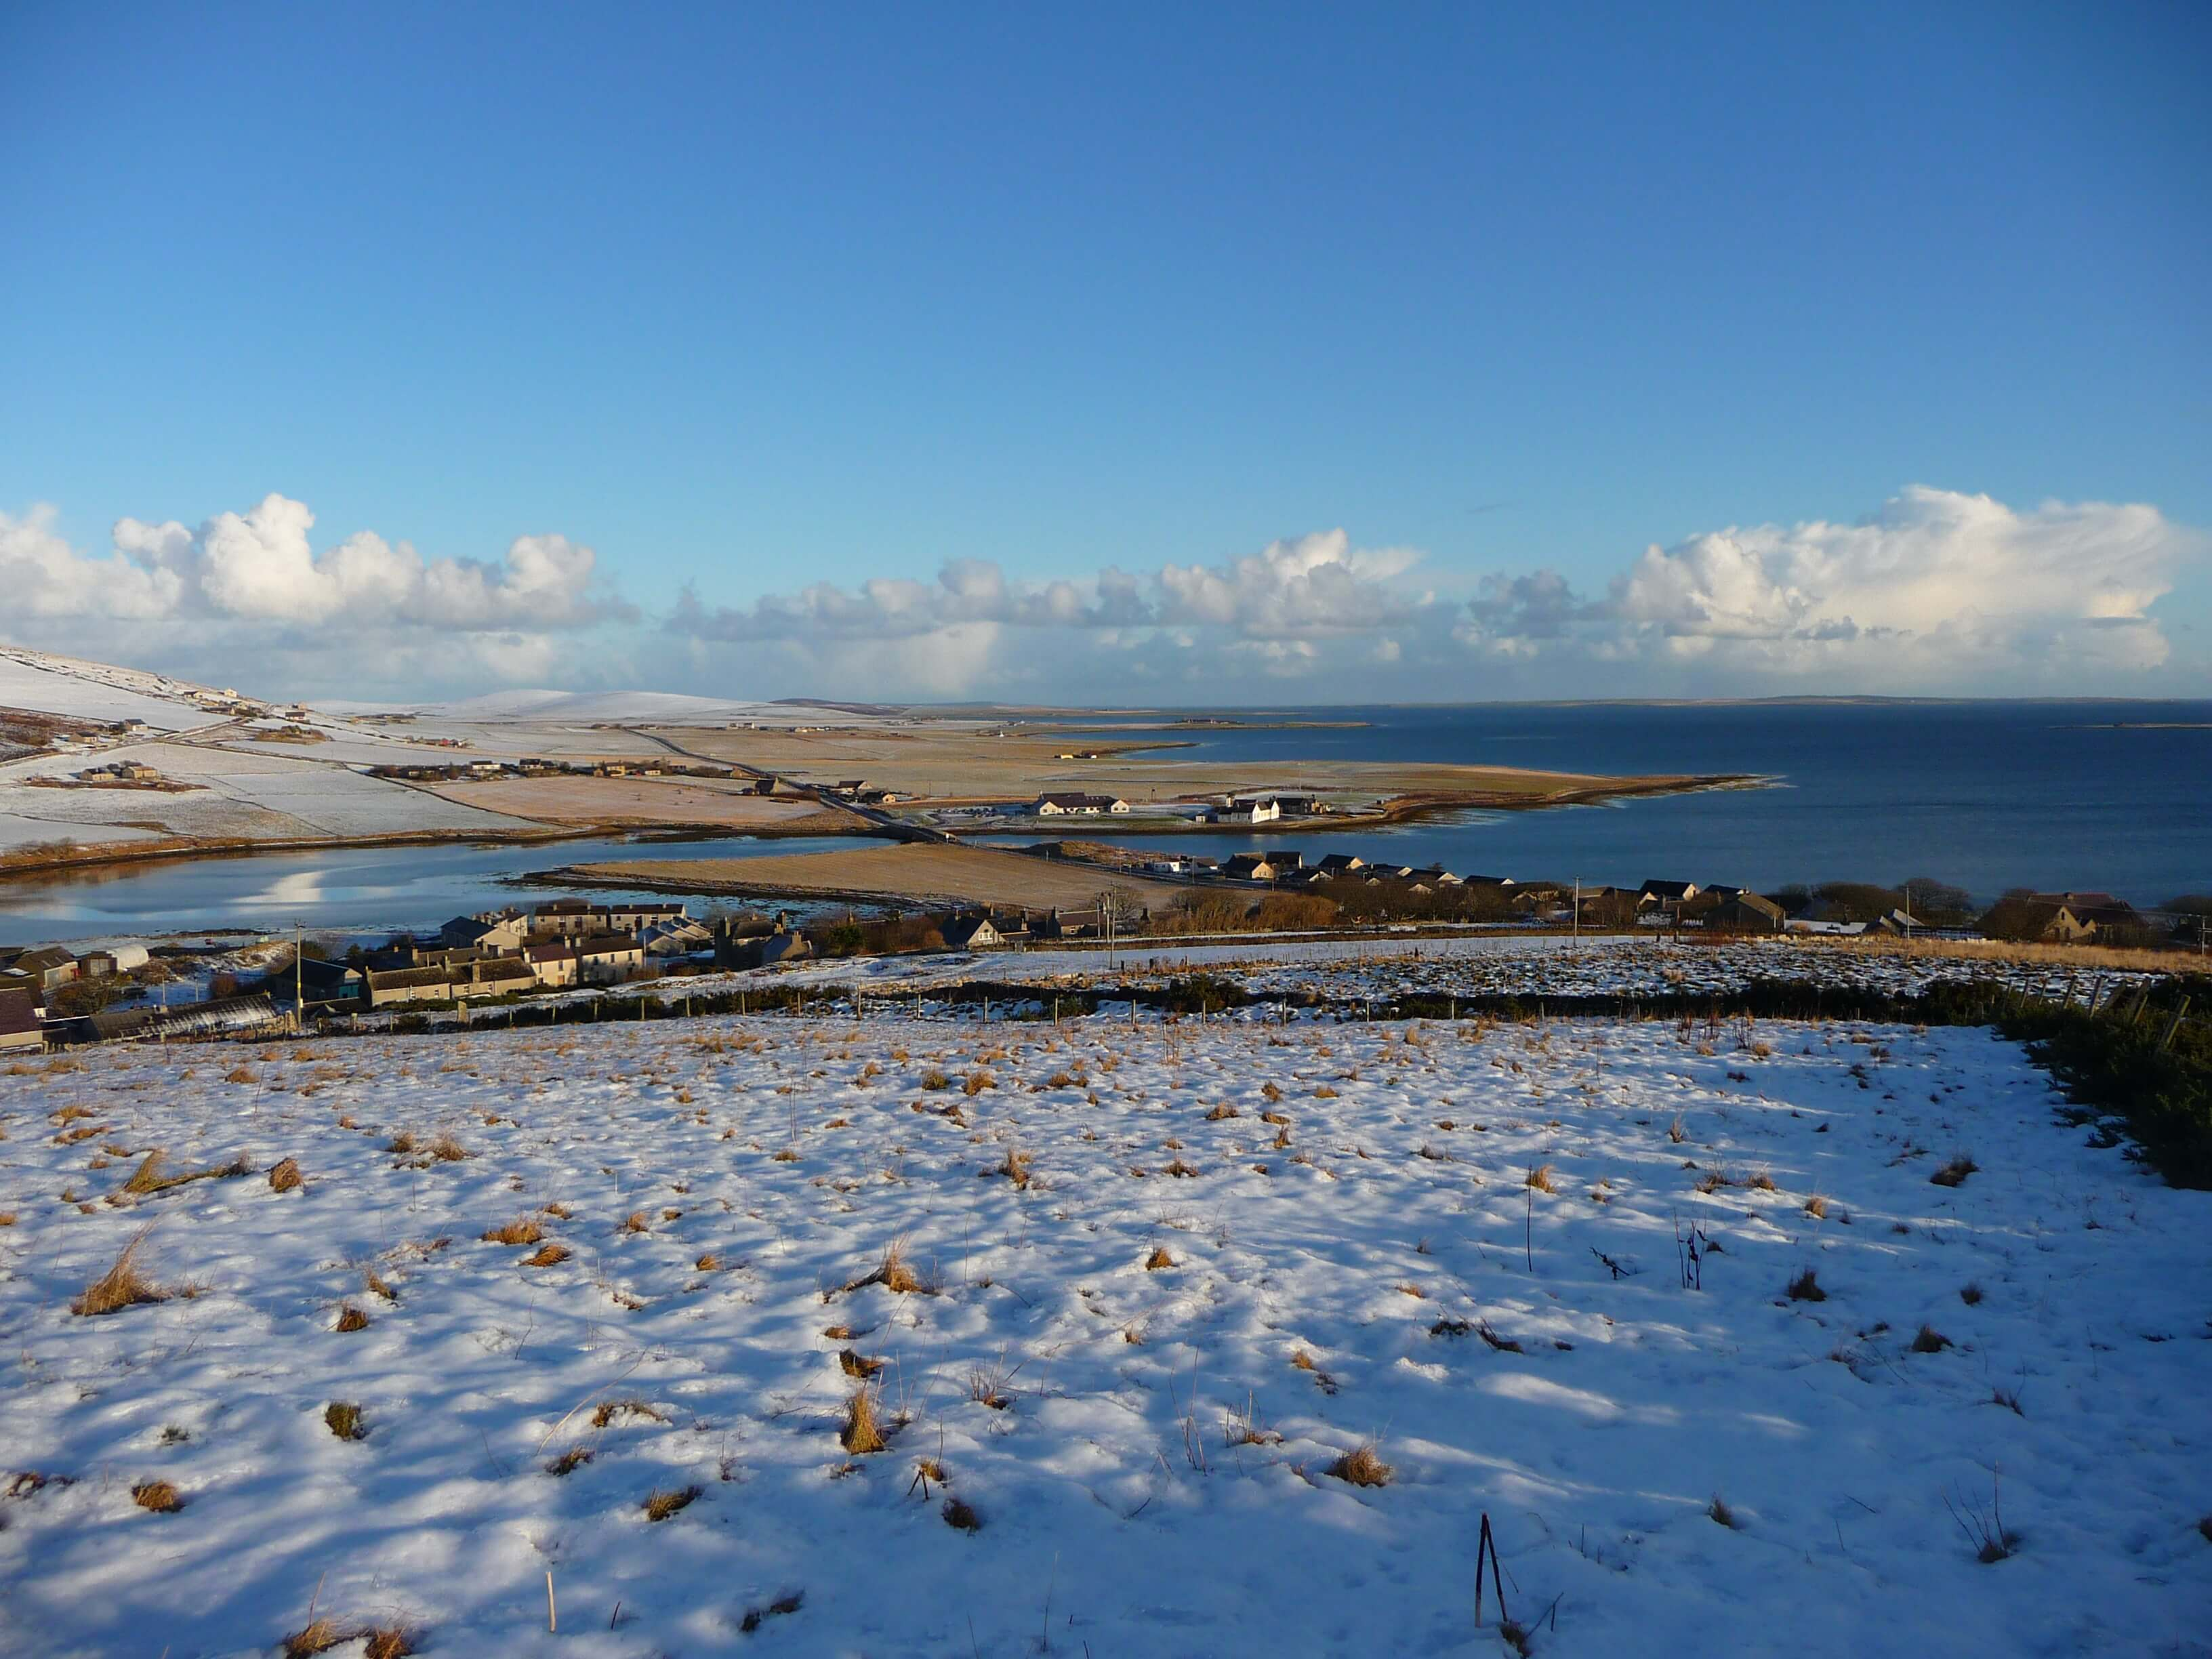 View from below the tower, Firth, Orkney, Scotland